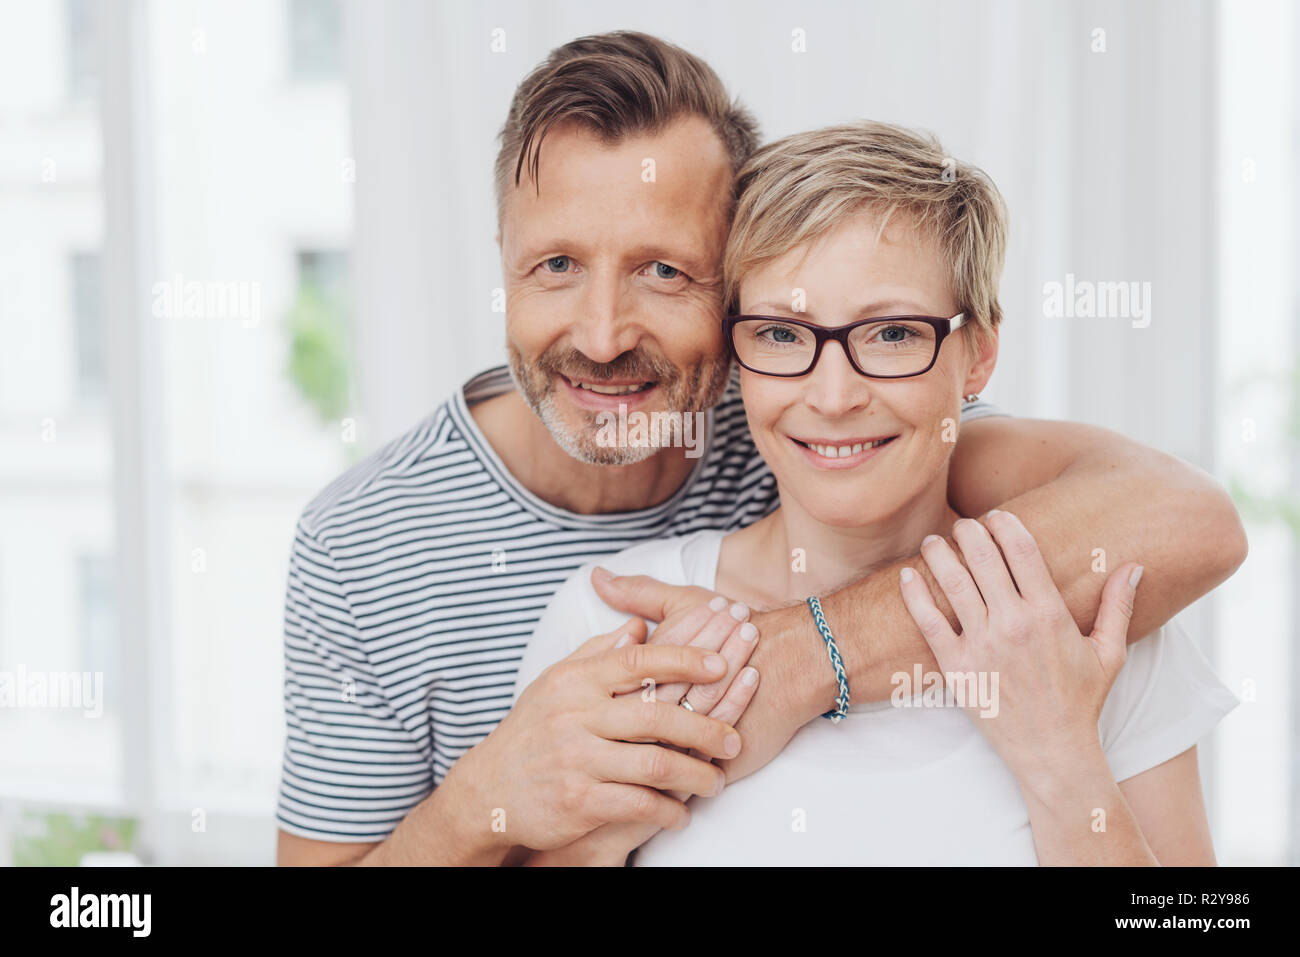 Upper body portrait of affectionate happy middle aged couple, man with arm around shoulder. - Stock Image